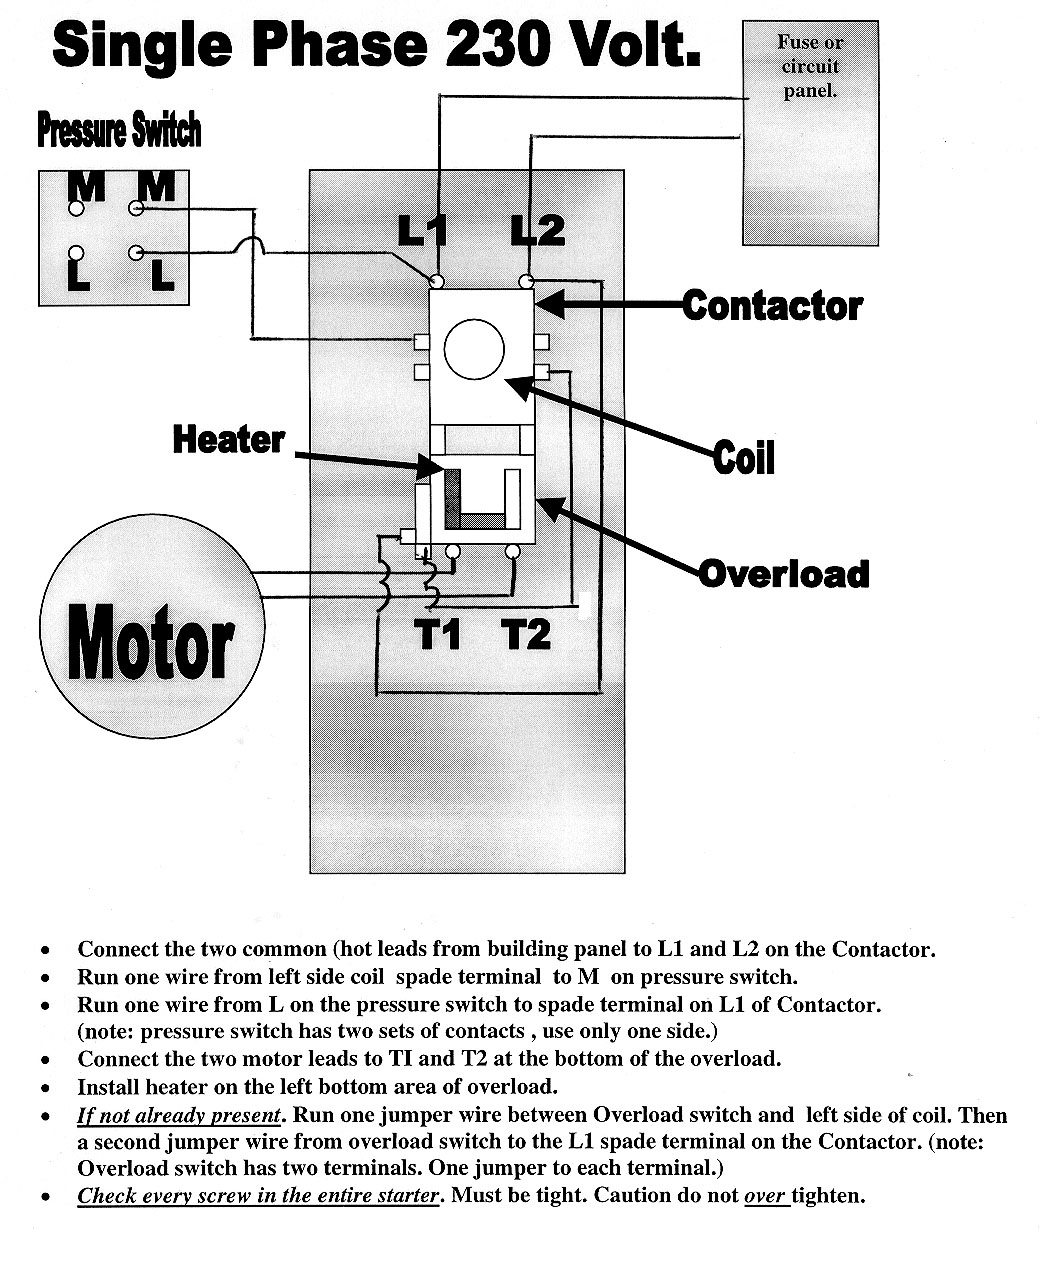 European 220V Wiring Diagram from annawiringdiagram.com